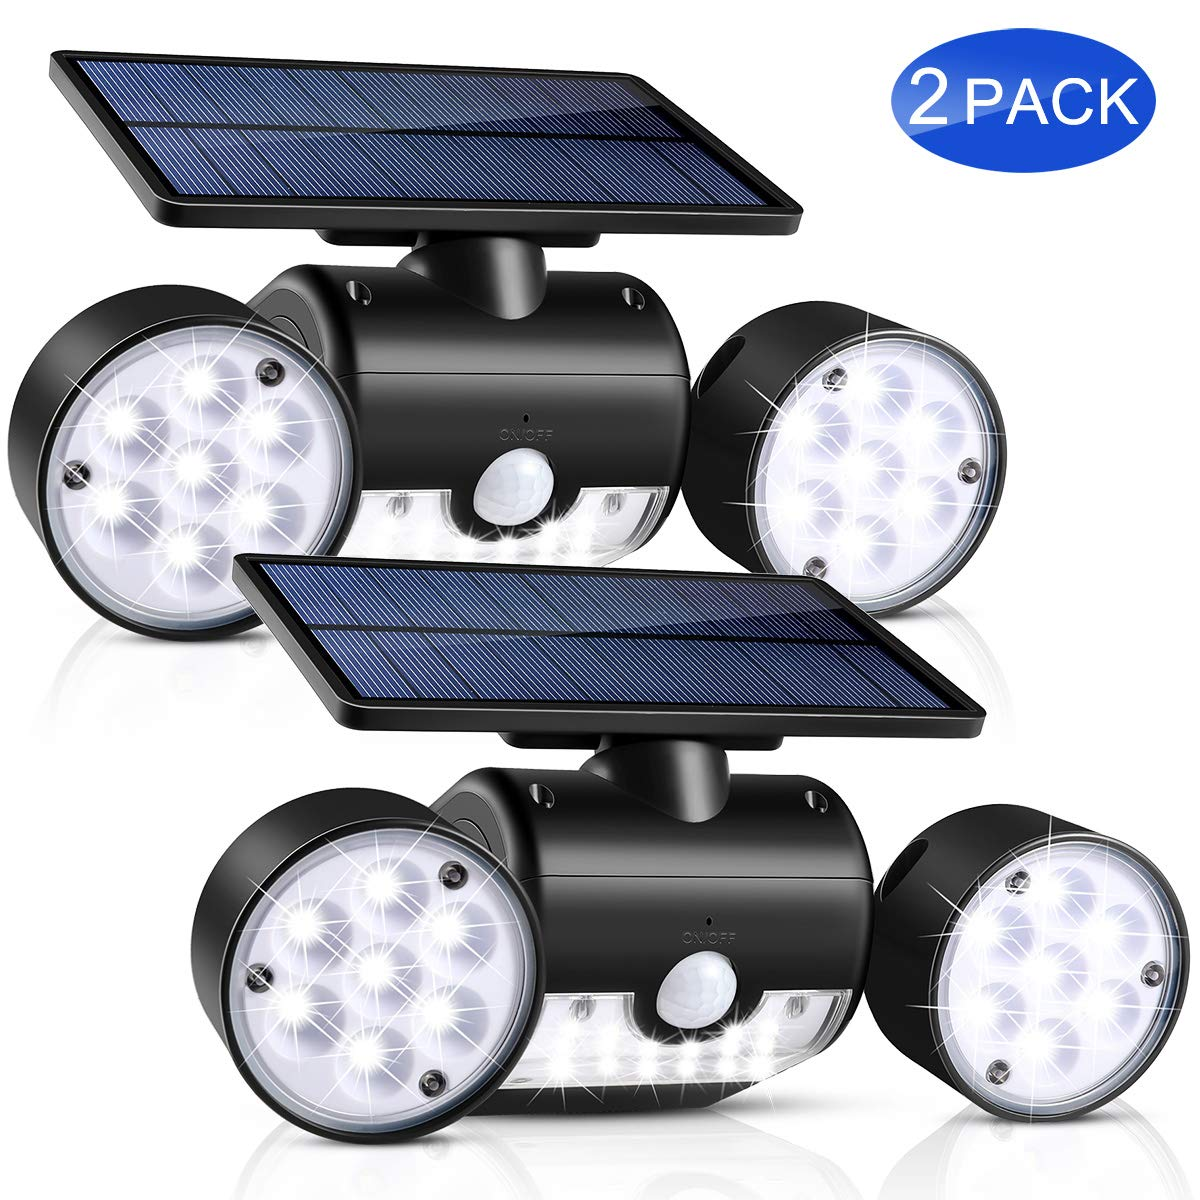 Solar Lights Outdoor, UNIFUN 30 LED Waterproof Solar Powered Wall Lights with Dual Head Spotlights 360-Degree Rotatable Solar Motion Security Night Lights for Outdoor Pation Yard Garden (Pack 2) by UNIFUN (Image #1)